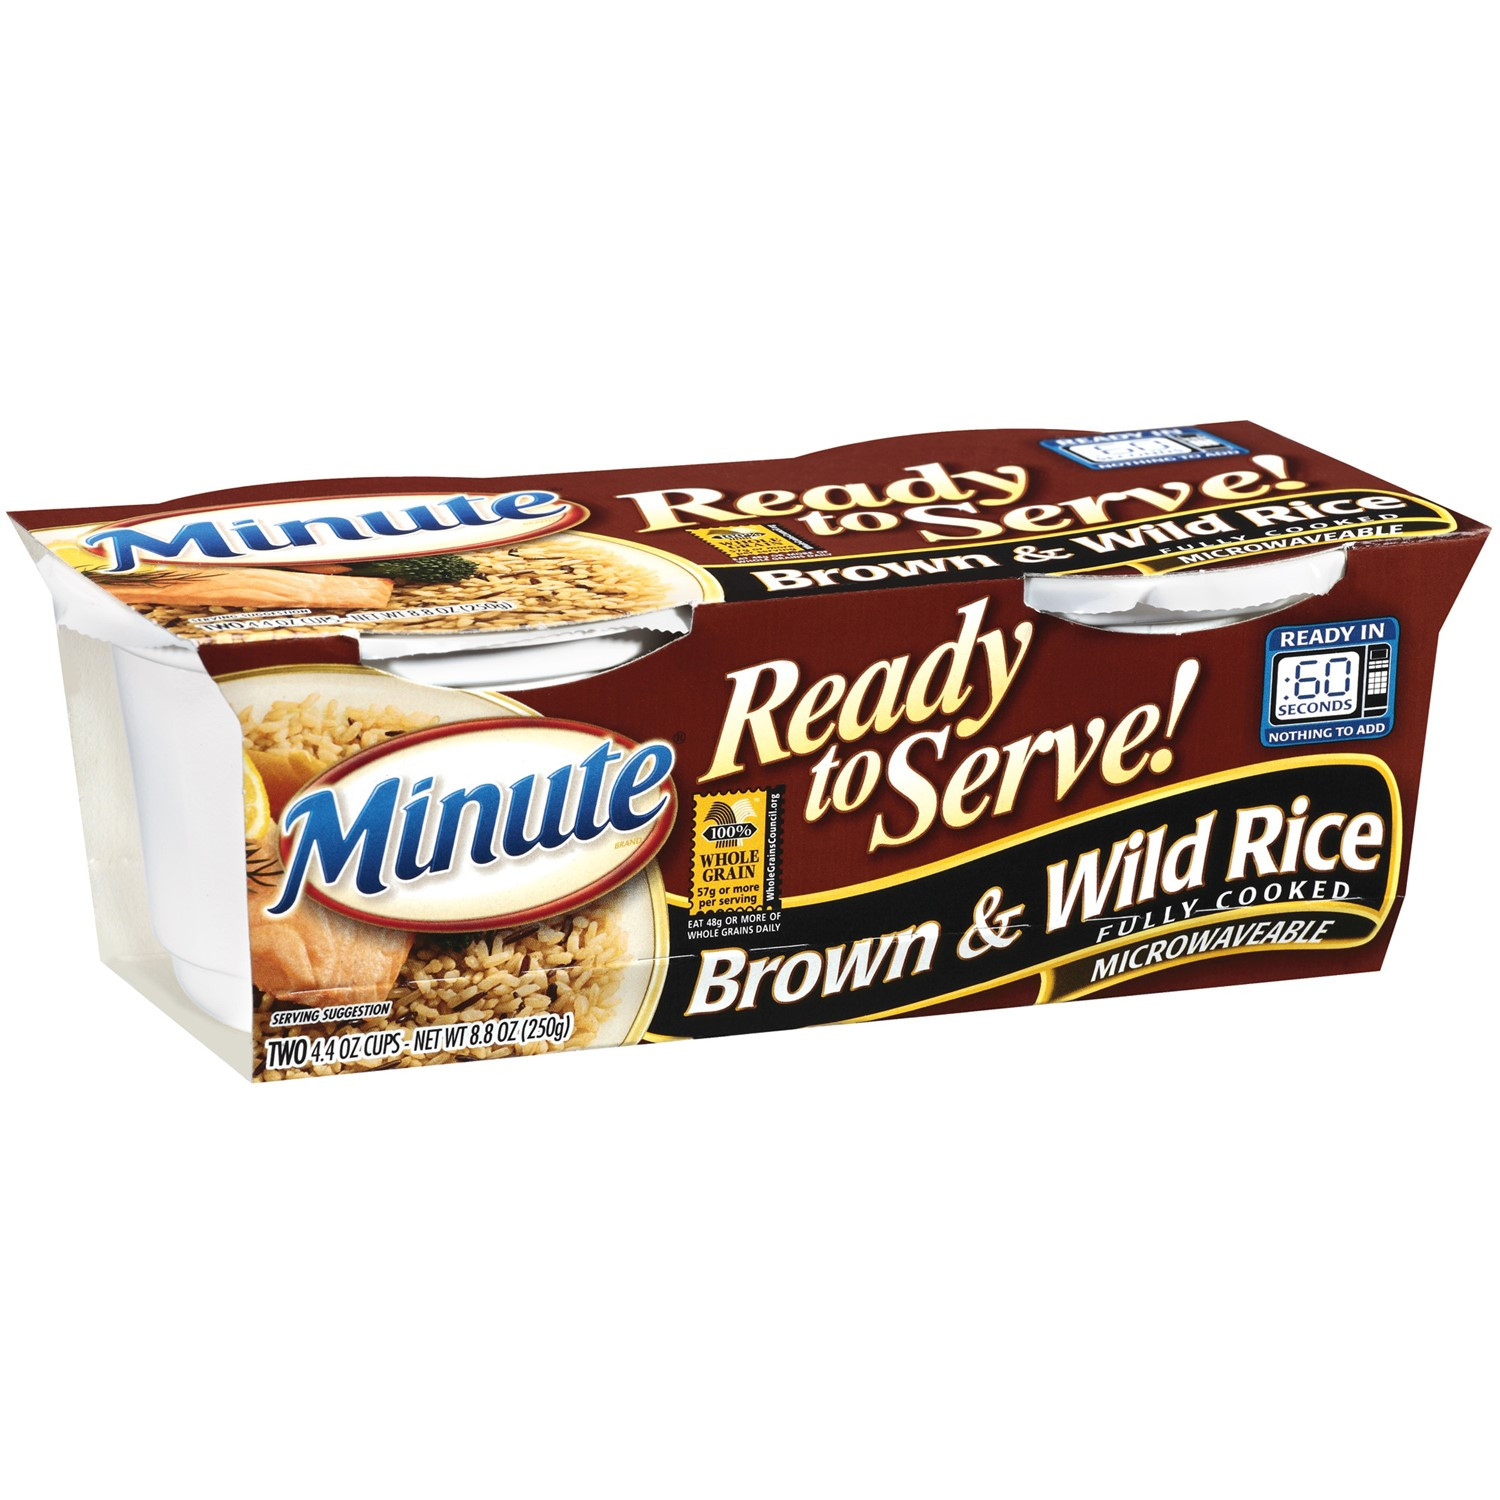 Minute Brown Rice  Minute Ready to Serve Brown & Wild Rice 2 4 4 Ounce cups